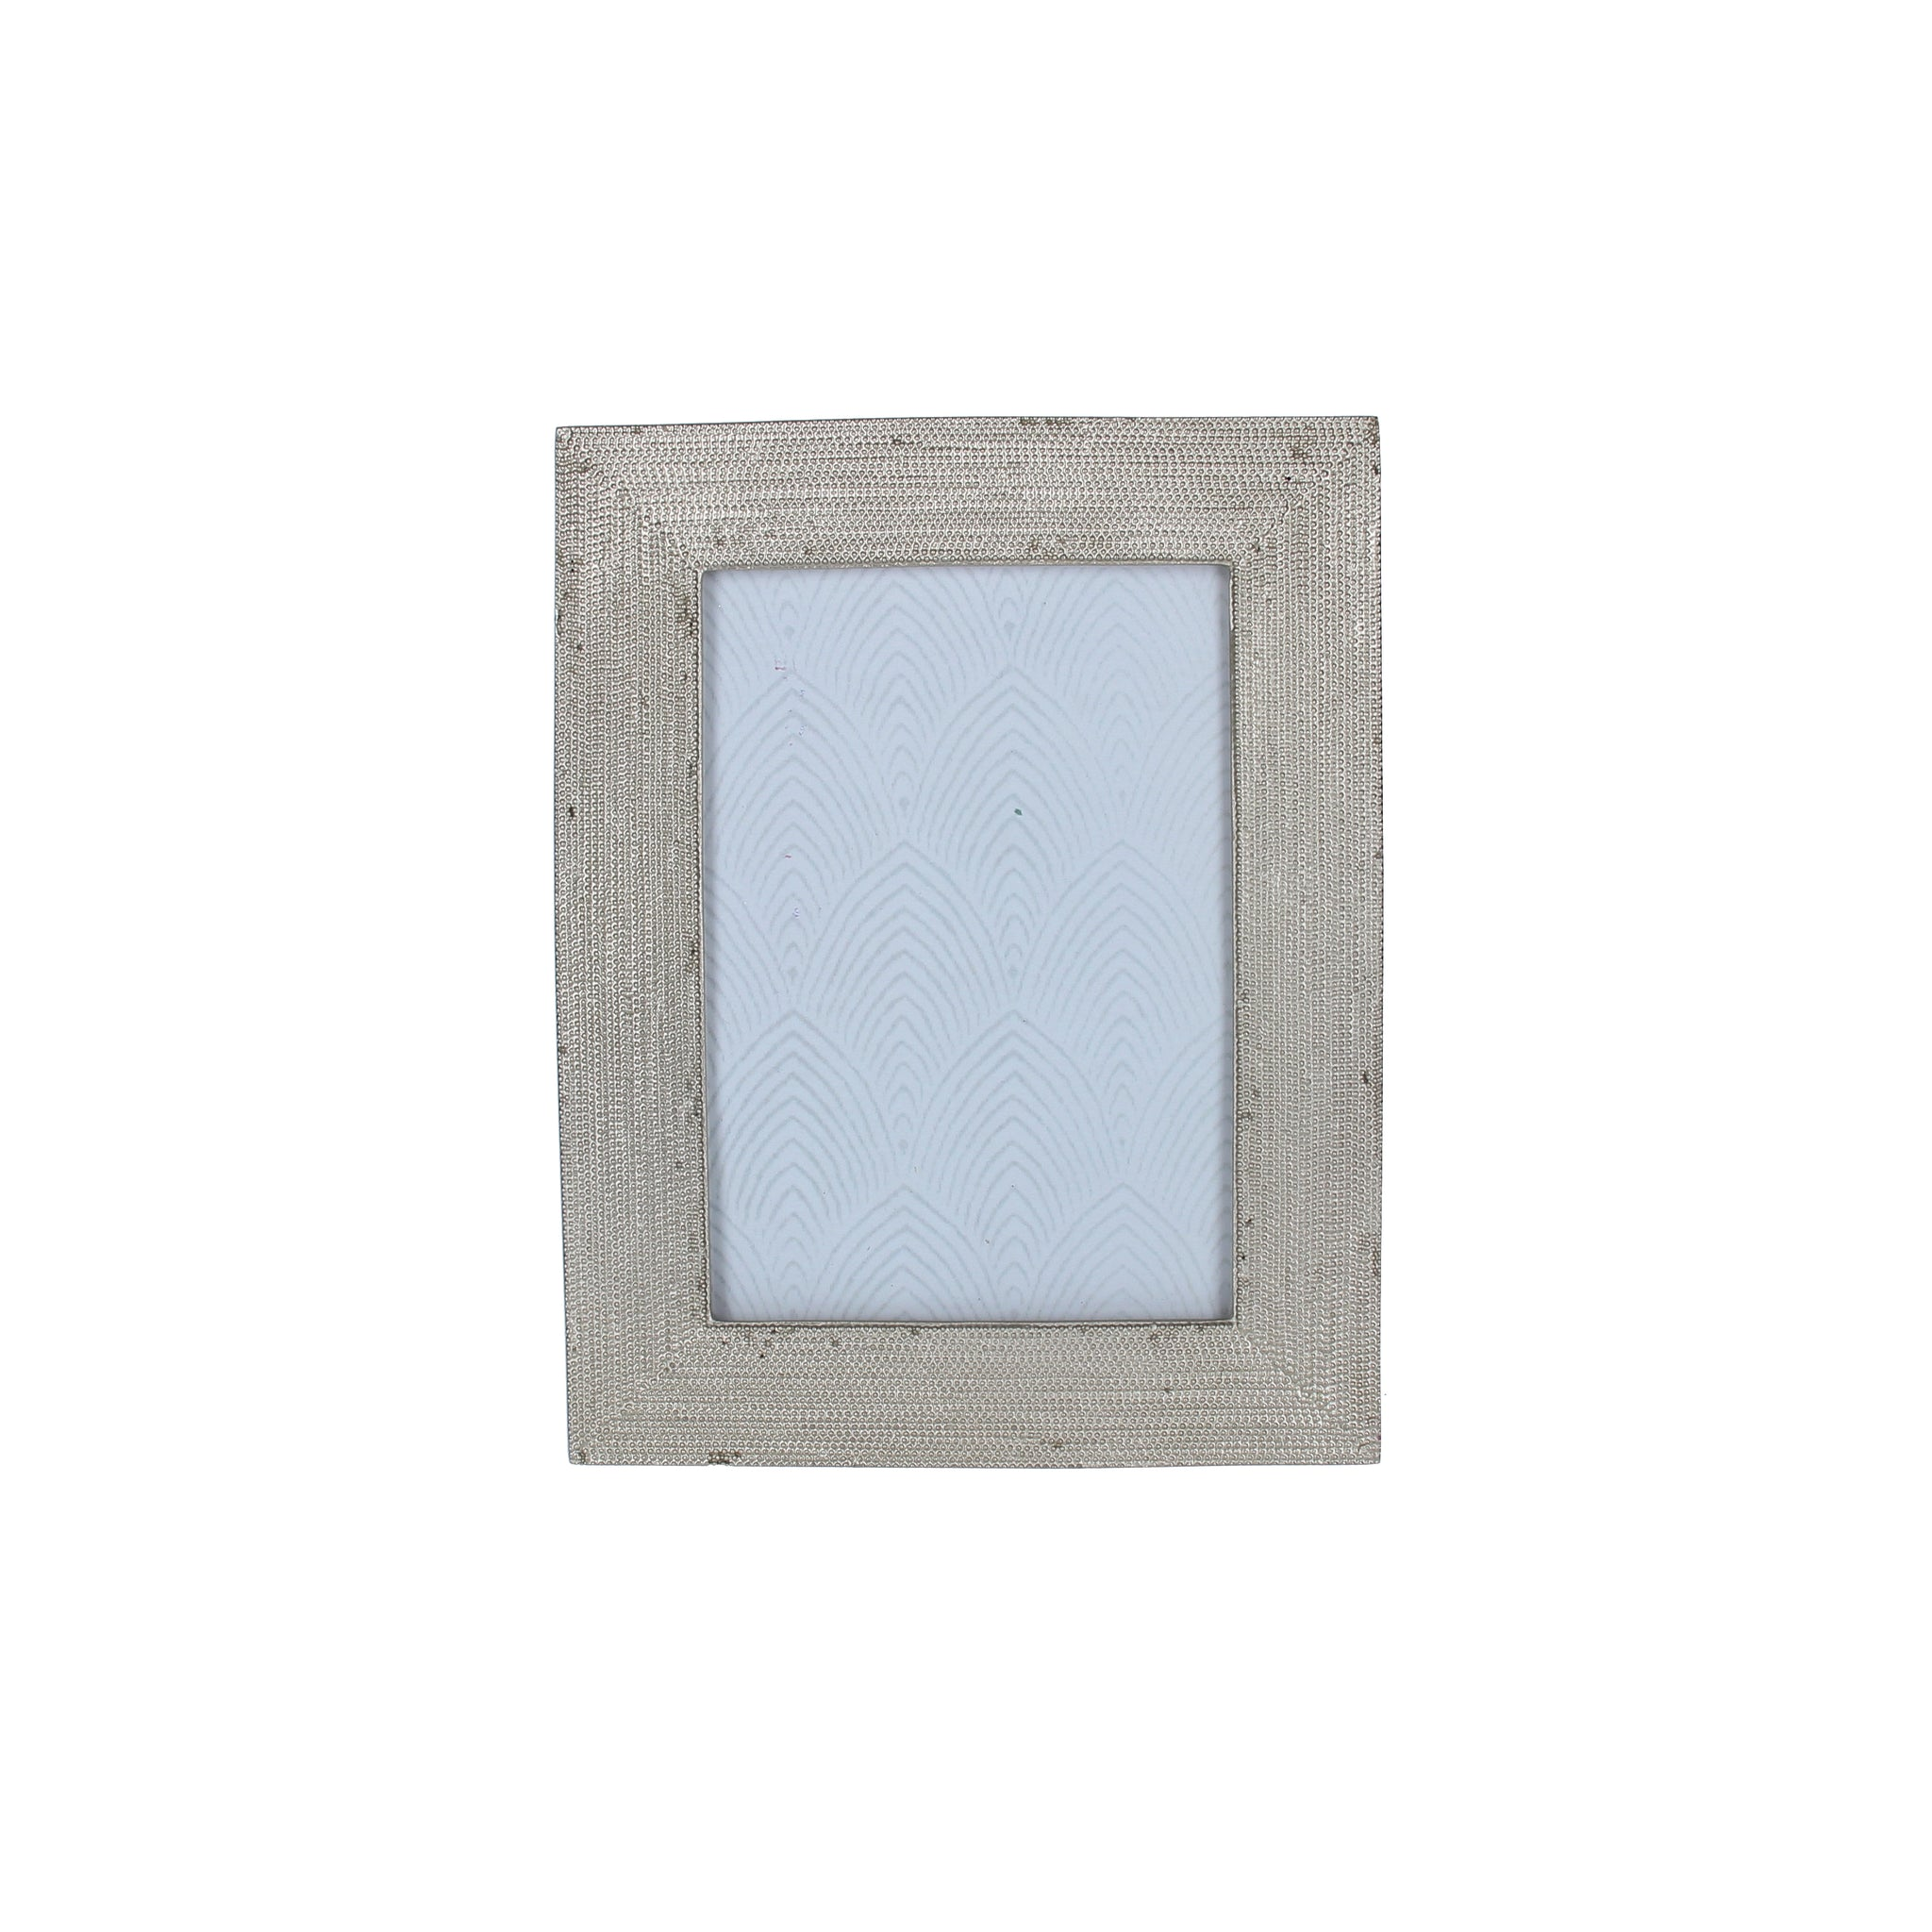 Beaded Silver Effect 2.5x3.5cm Photo Frame